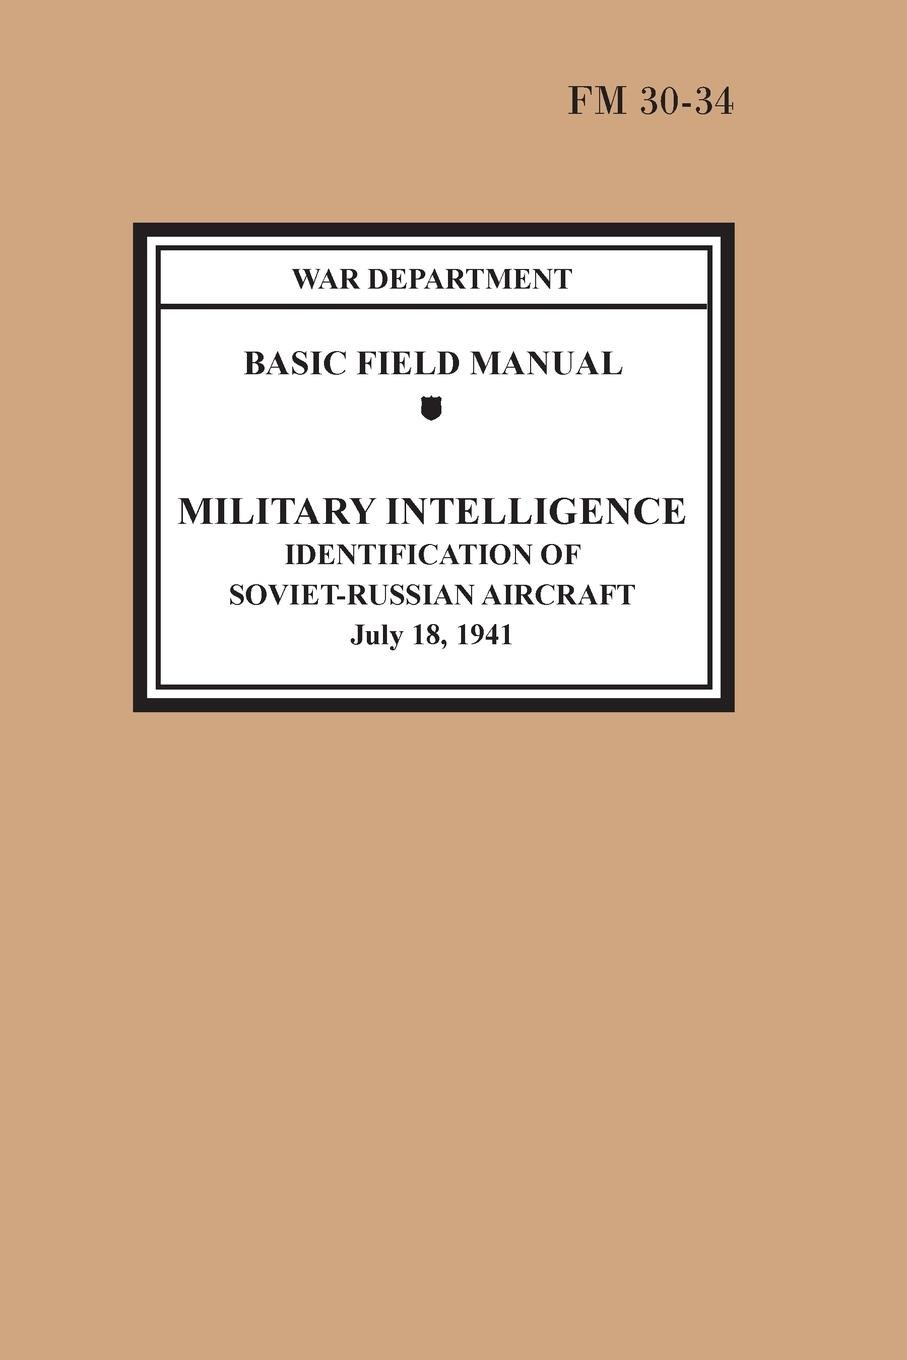 Identification of Soviet-Russian Aircraft (Basic Field Manual Military Intelligence FM 30-34) ebook